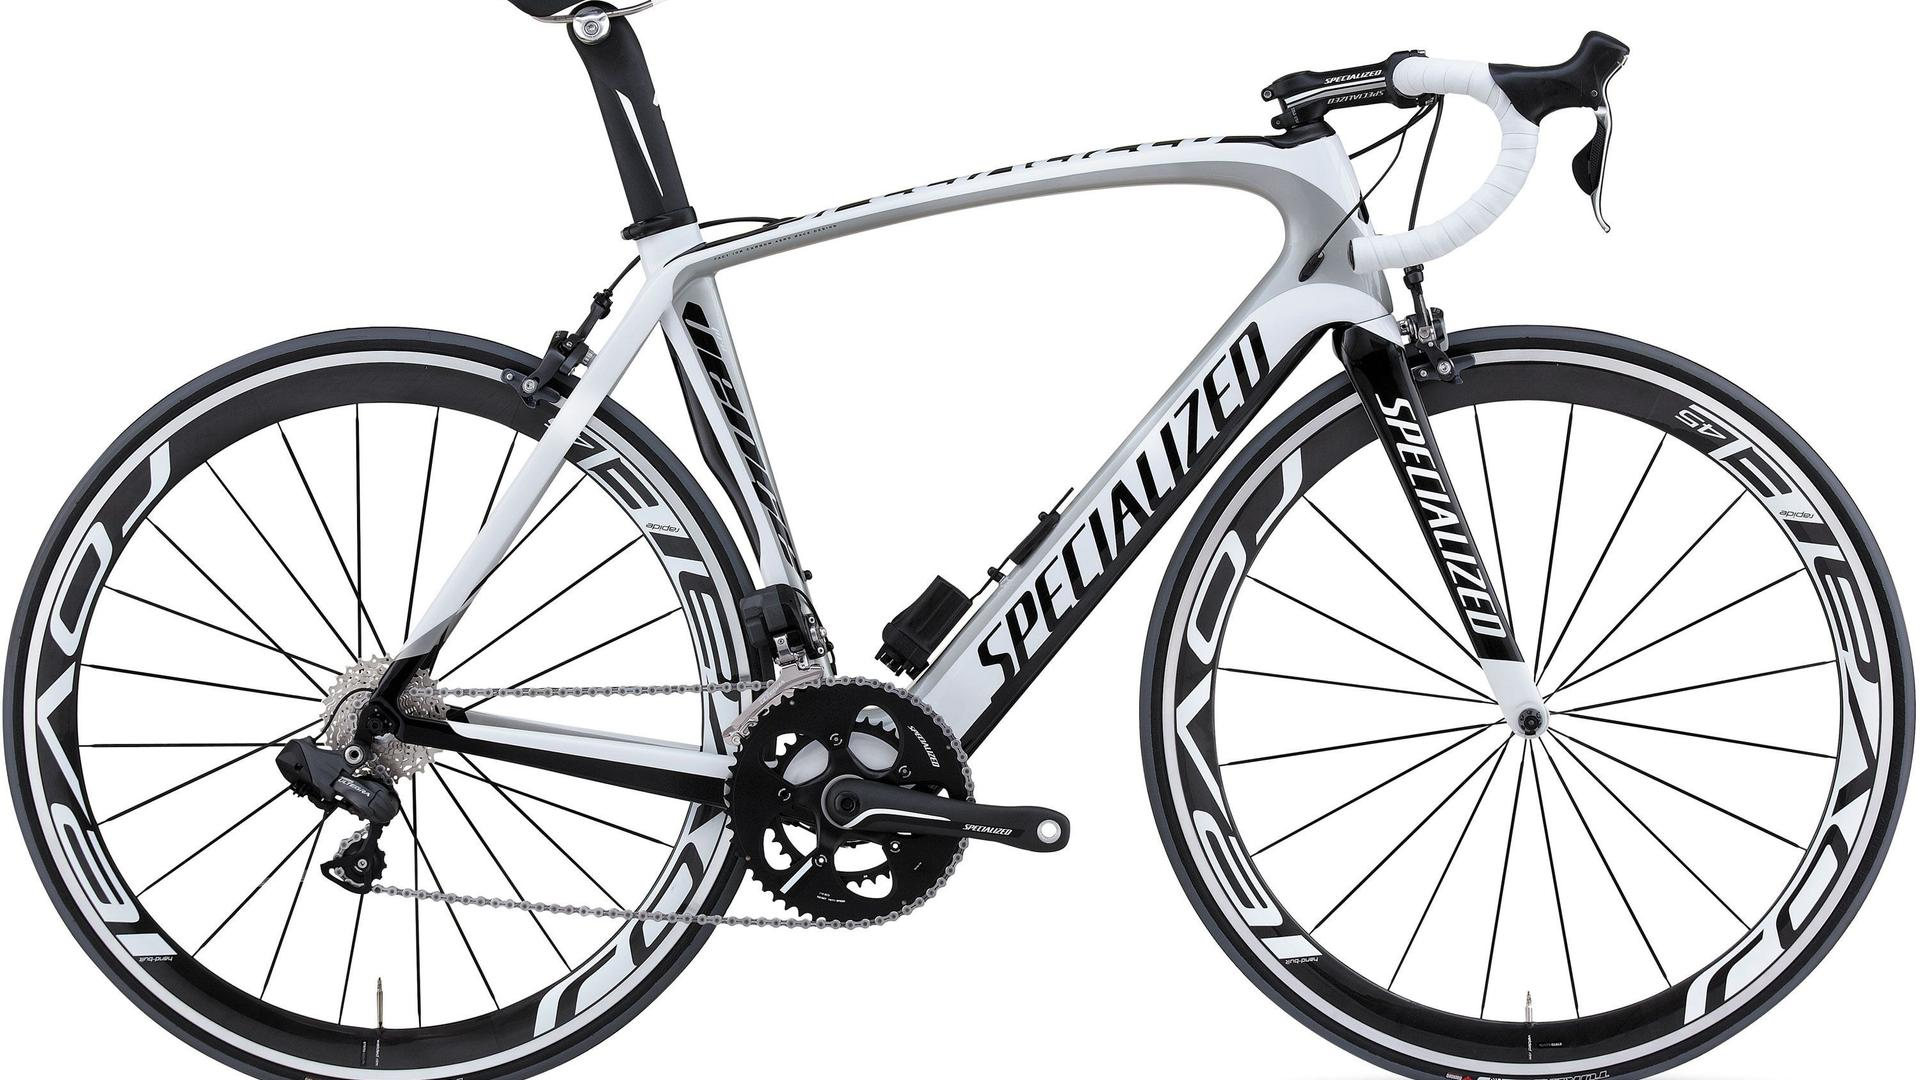 White And Black Bicycle Sports Specialized Bike